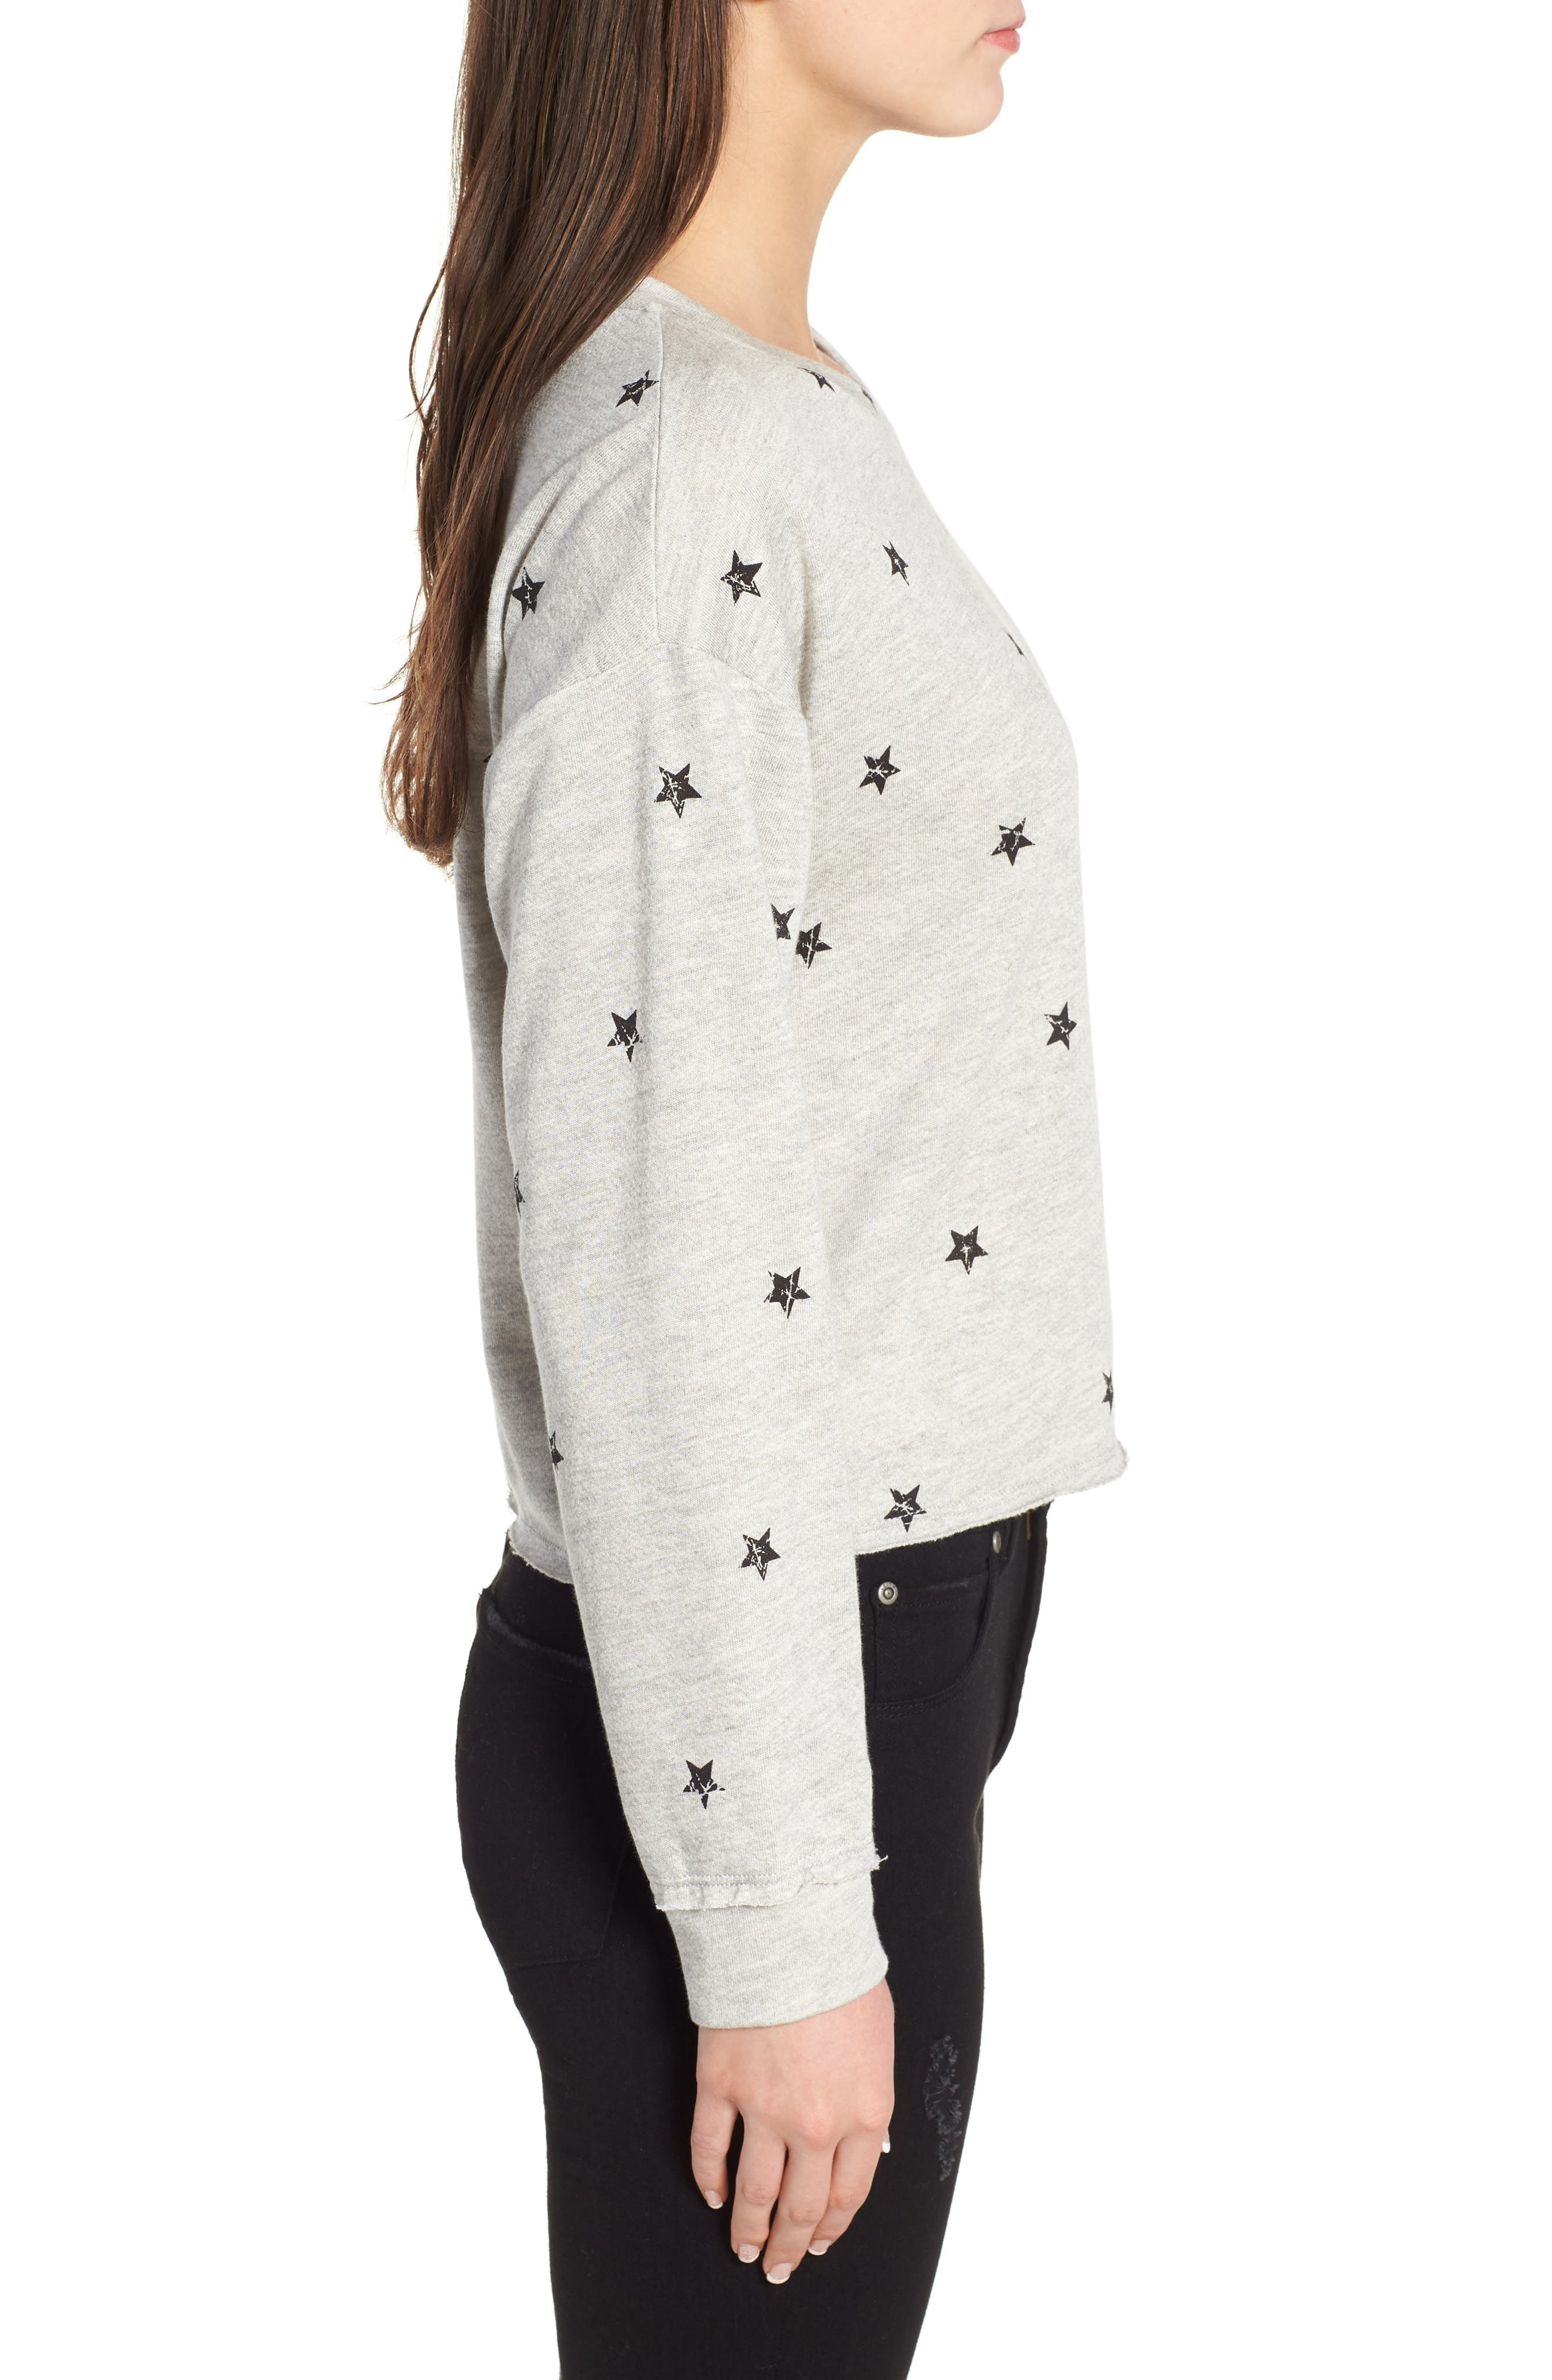 Star Print Sweatshirt,                             Alternate thumbnail 3, color,                             035